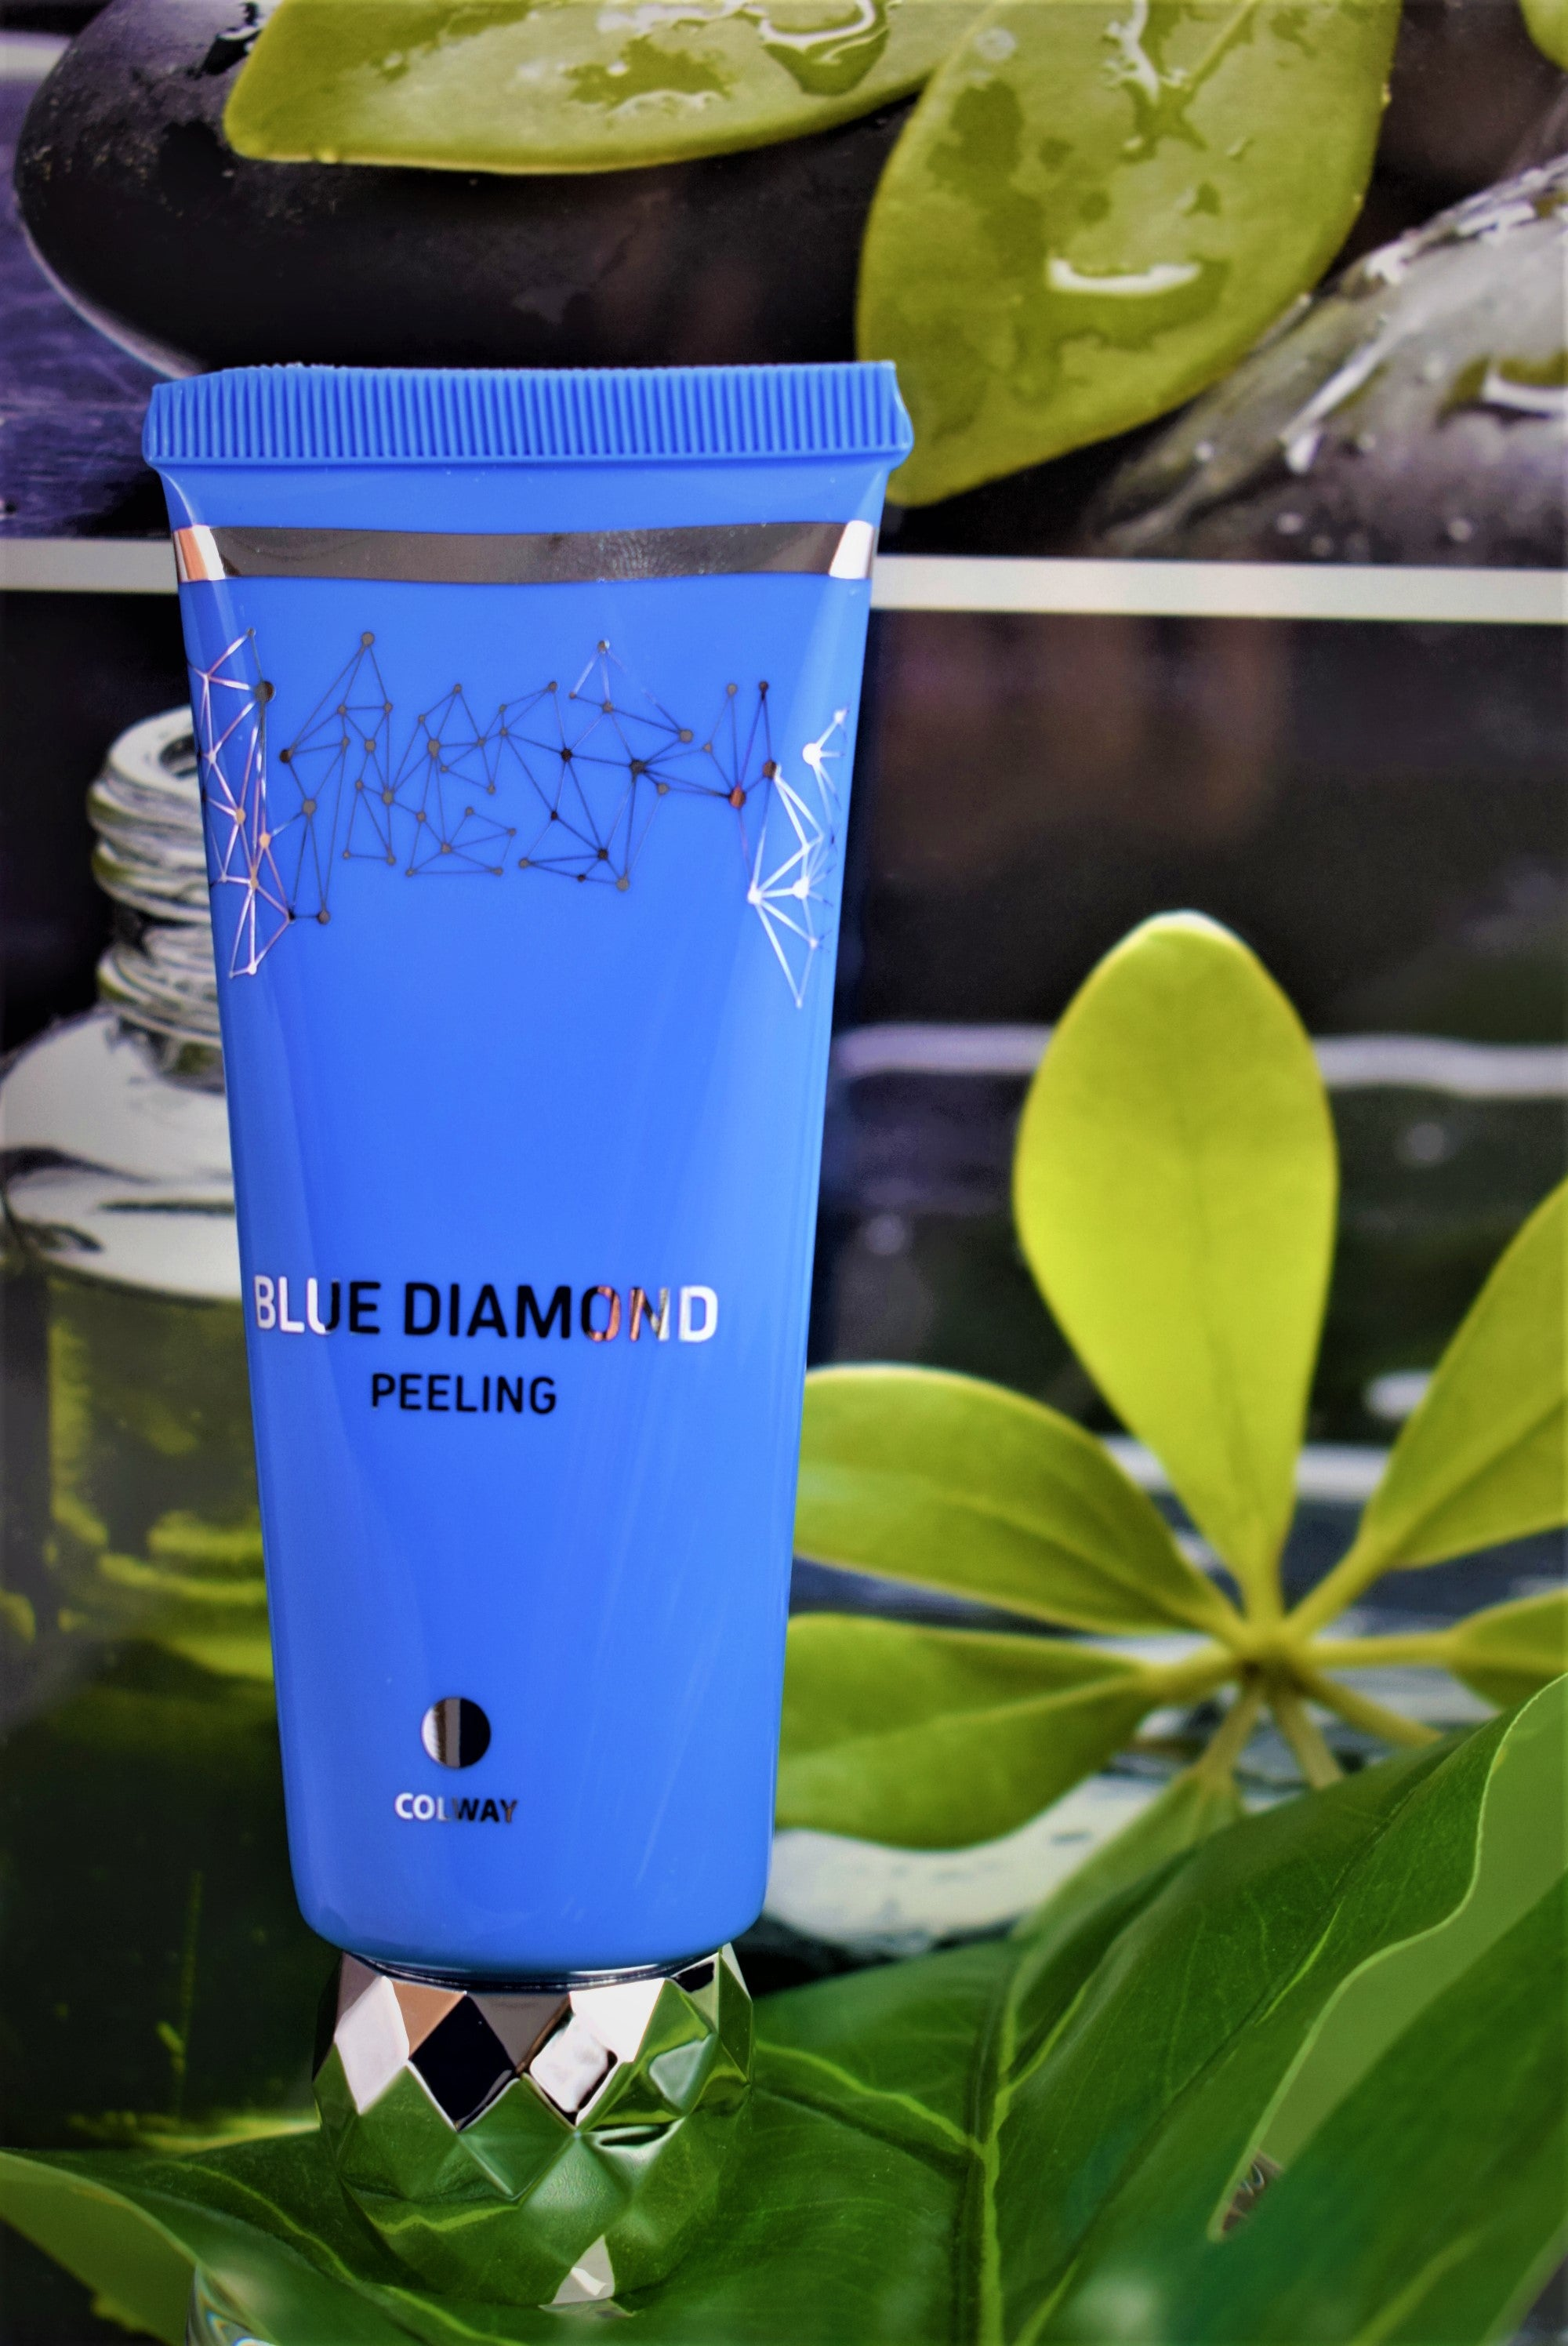 Blue Diamond exfoliante facial con polvo de diamante - colagenonaturalcolway